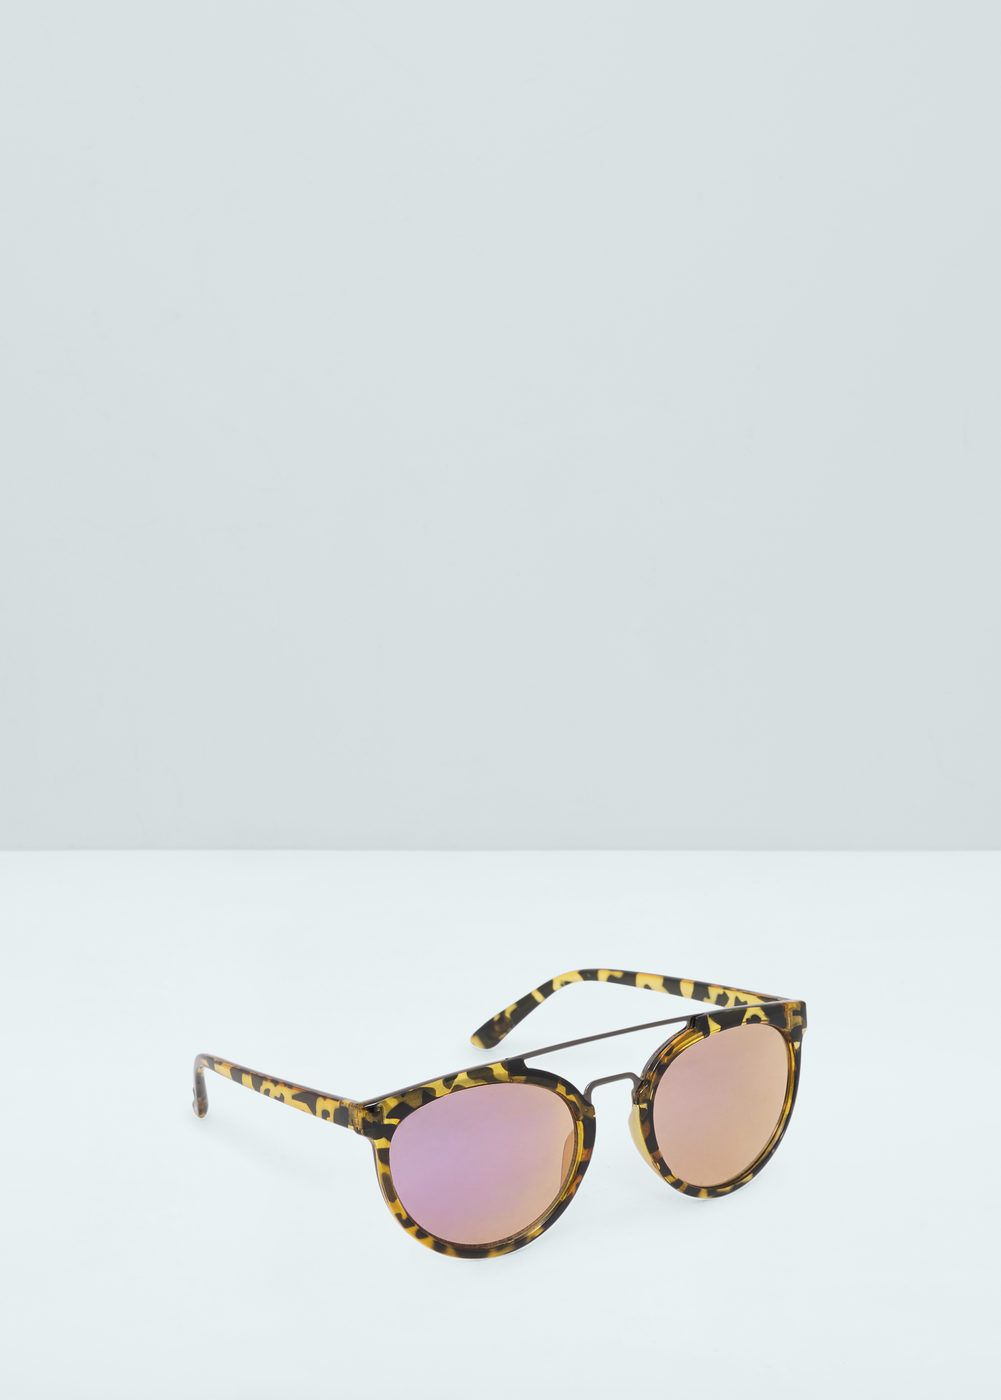 4dd19047df87 Contrasting sunglasses - Women | s t y l e | Sunglasses, Retro ...